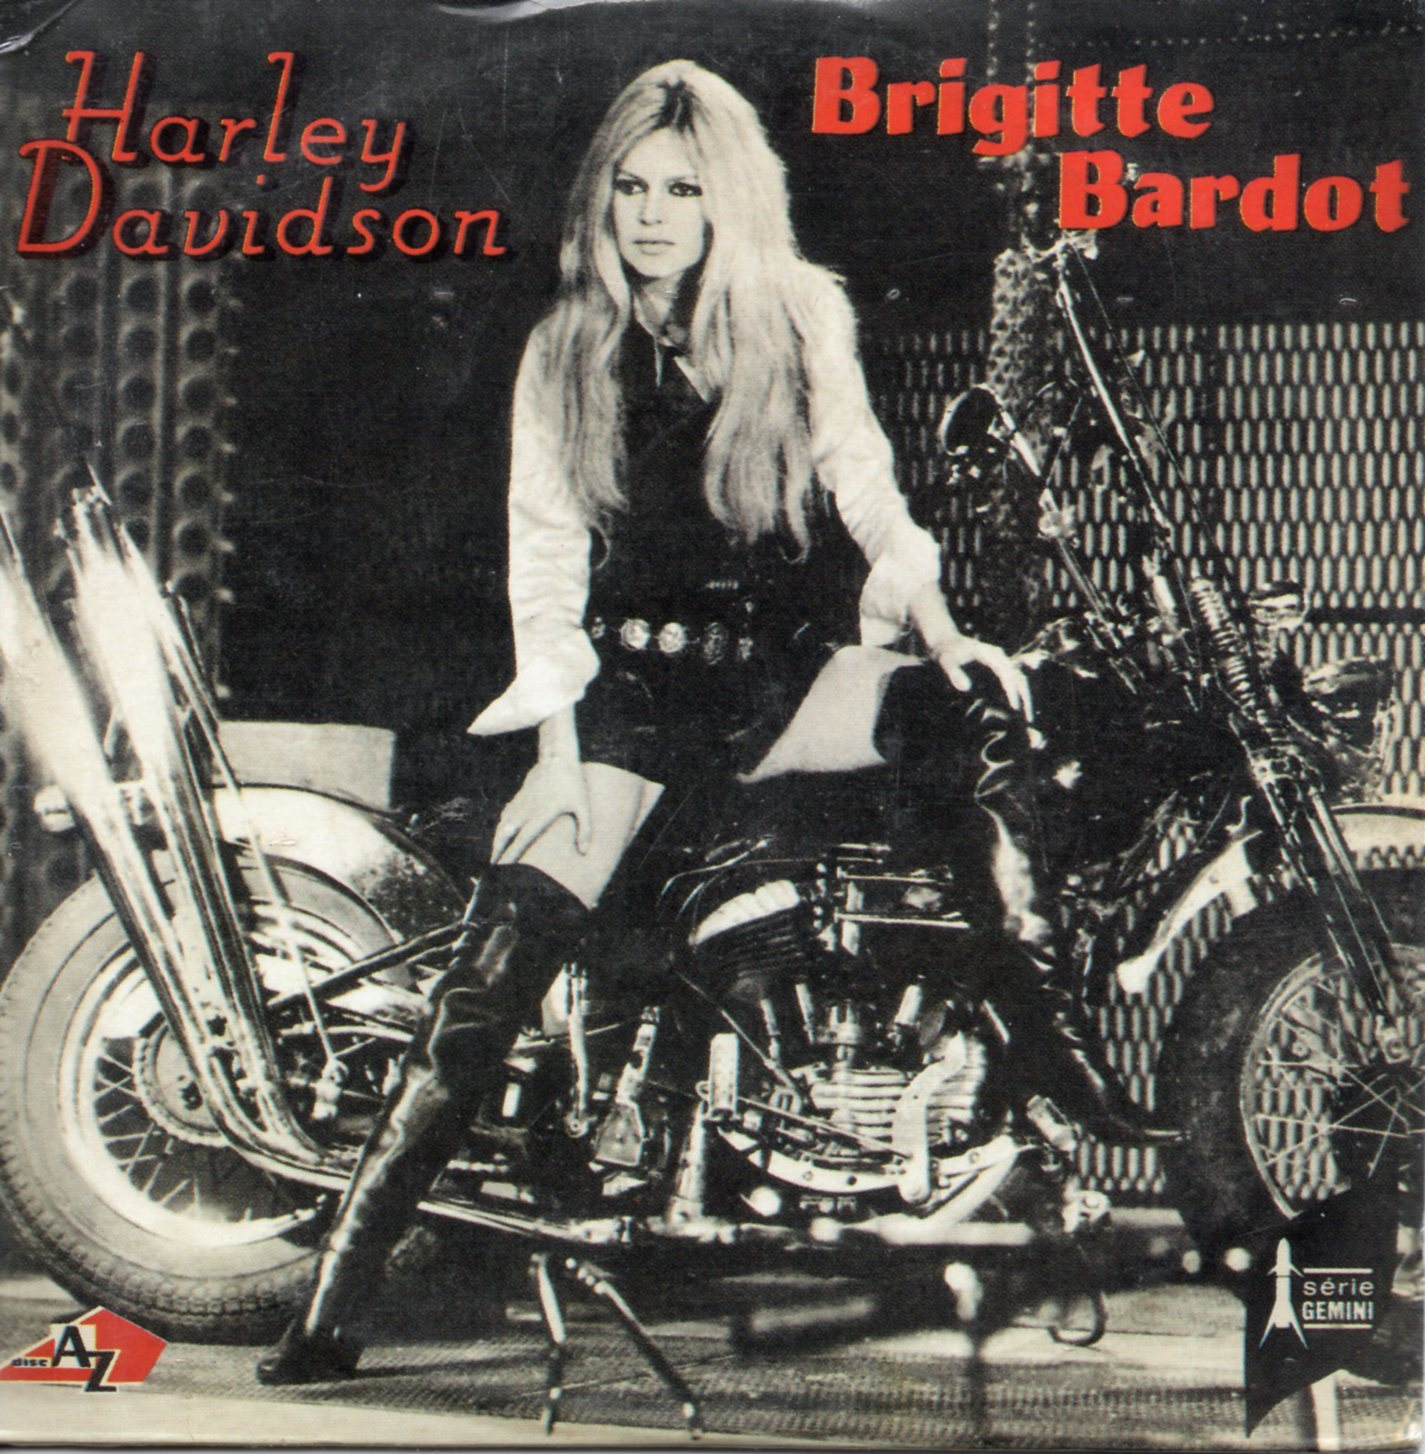 BRIGITTE BARDOT - Harley Davidson 2-track CARD SLEEVE - CD single